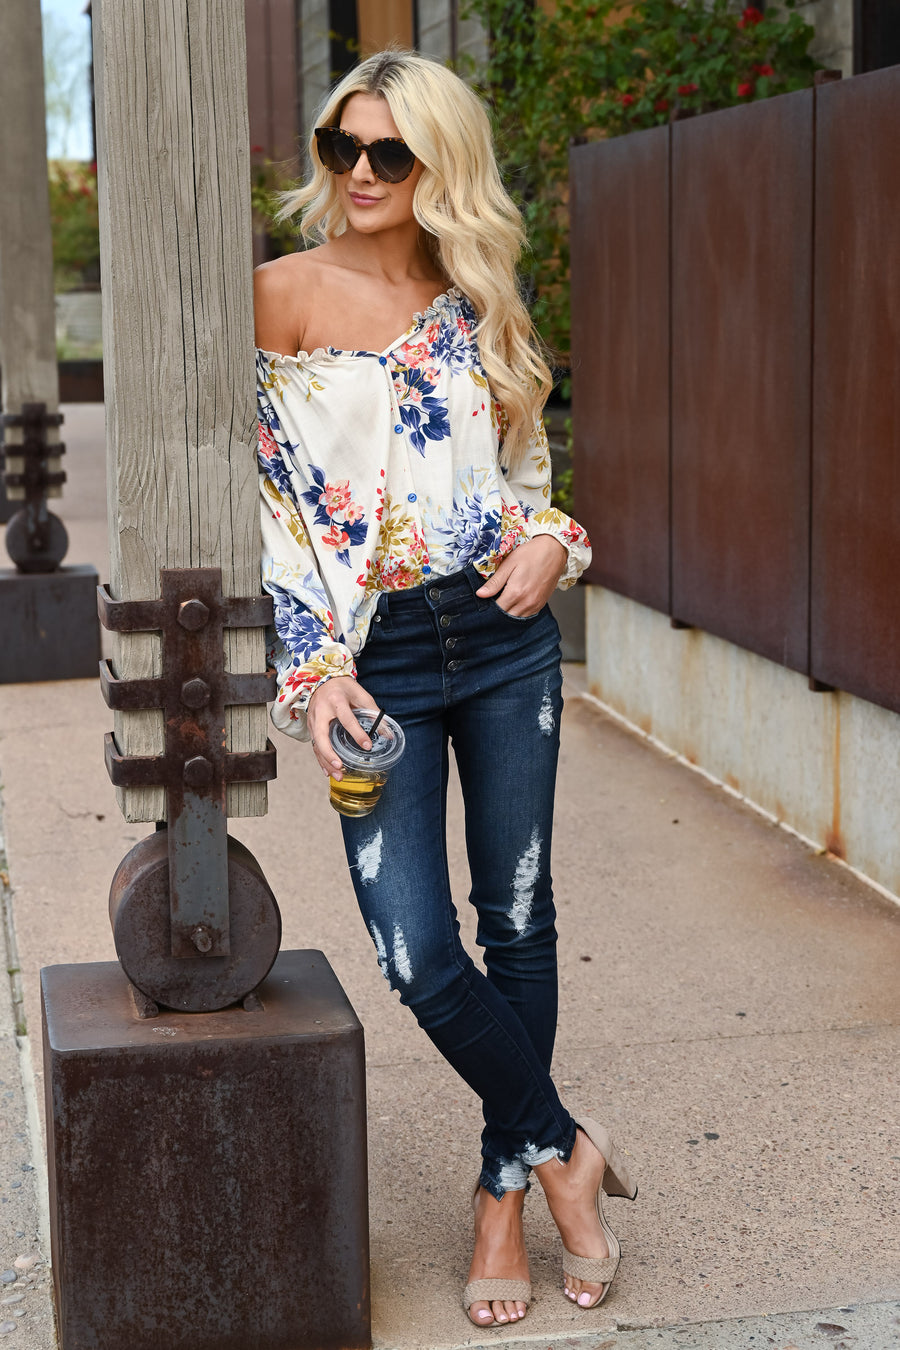 New Destinations Floral Top - Ivory women's colorful floral print blouse, Closet Candy Boutique 1